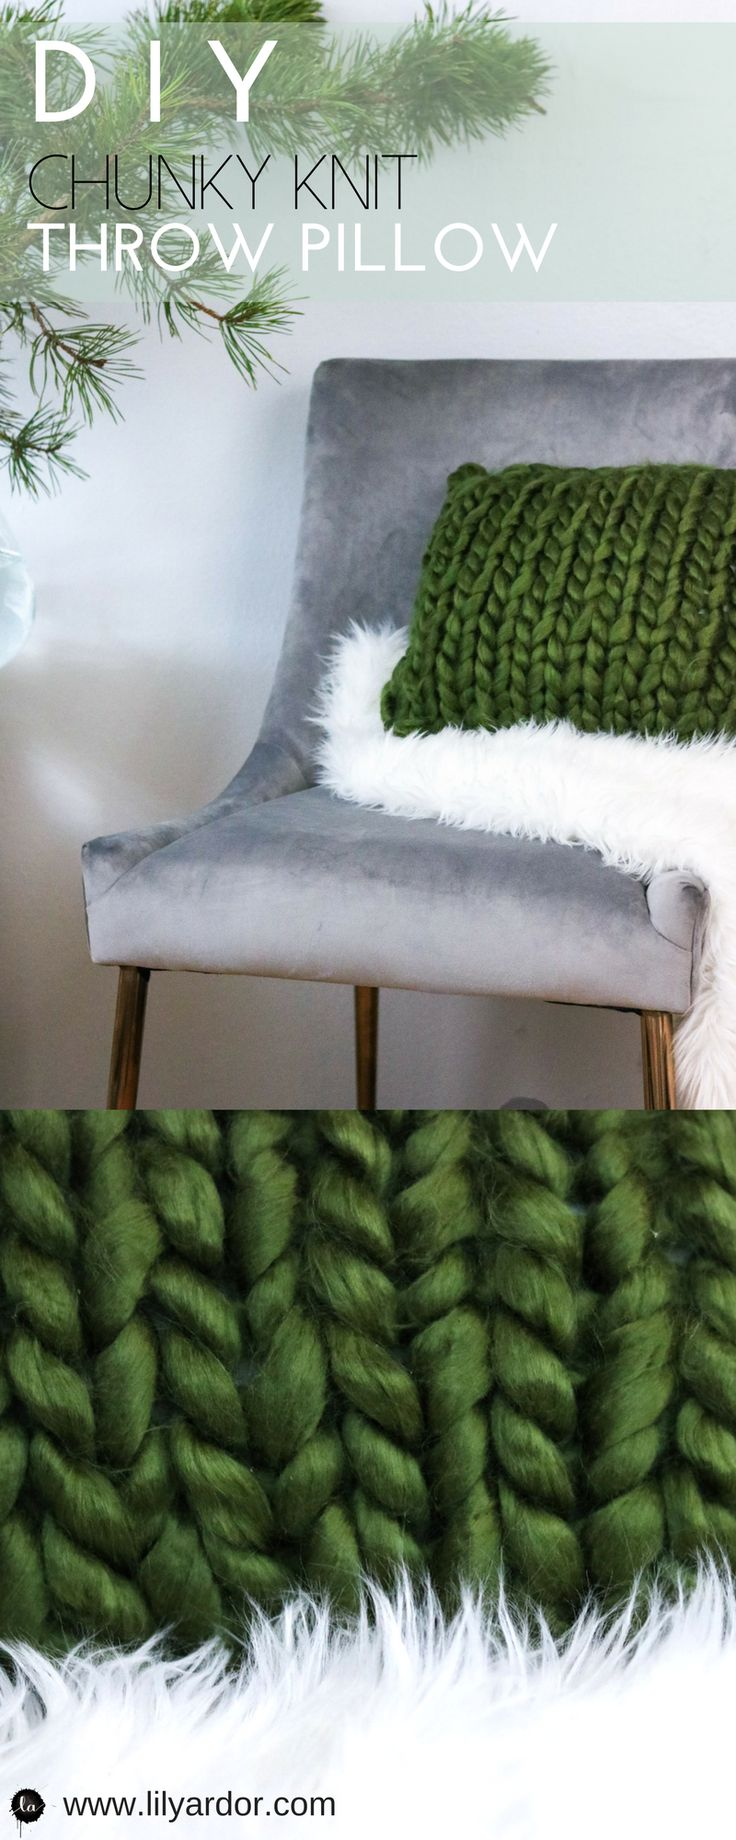 Make the easy throw pillow to add the perfect texture to any space!